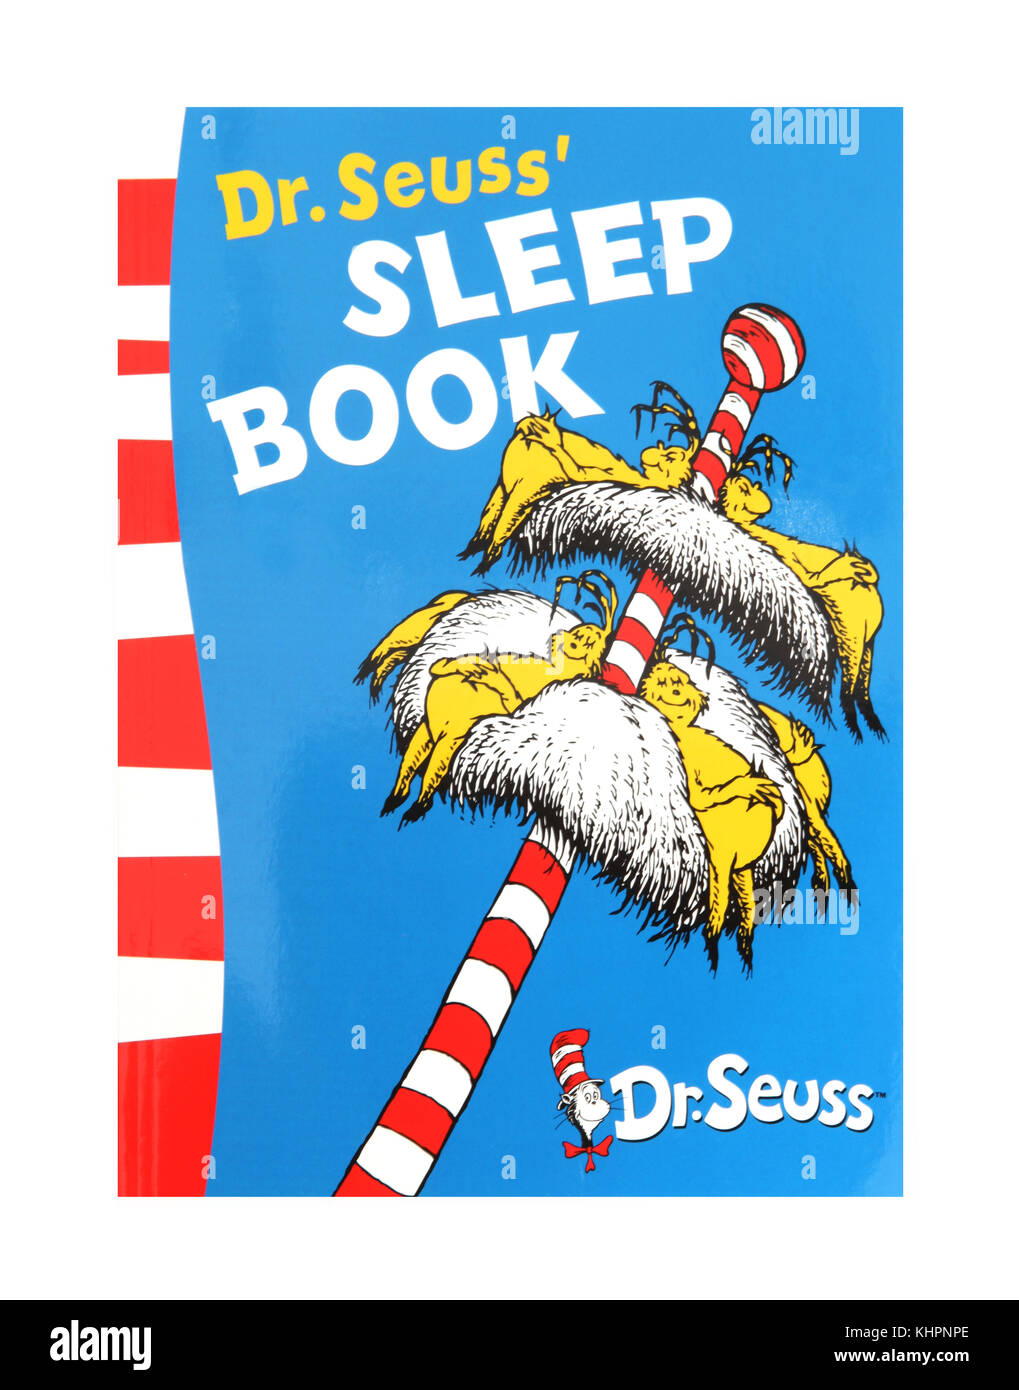 Dr Seuss Book Stock Photos Amp Dr Seuss Book Stock Images